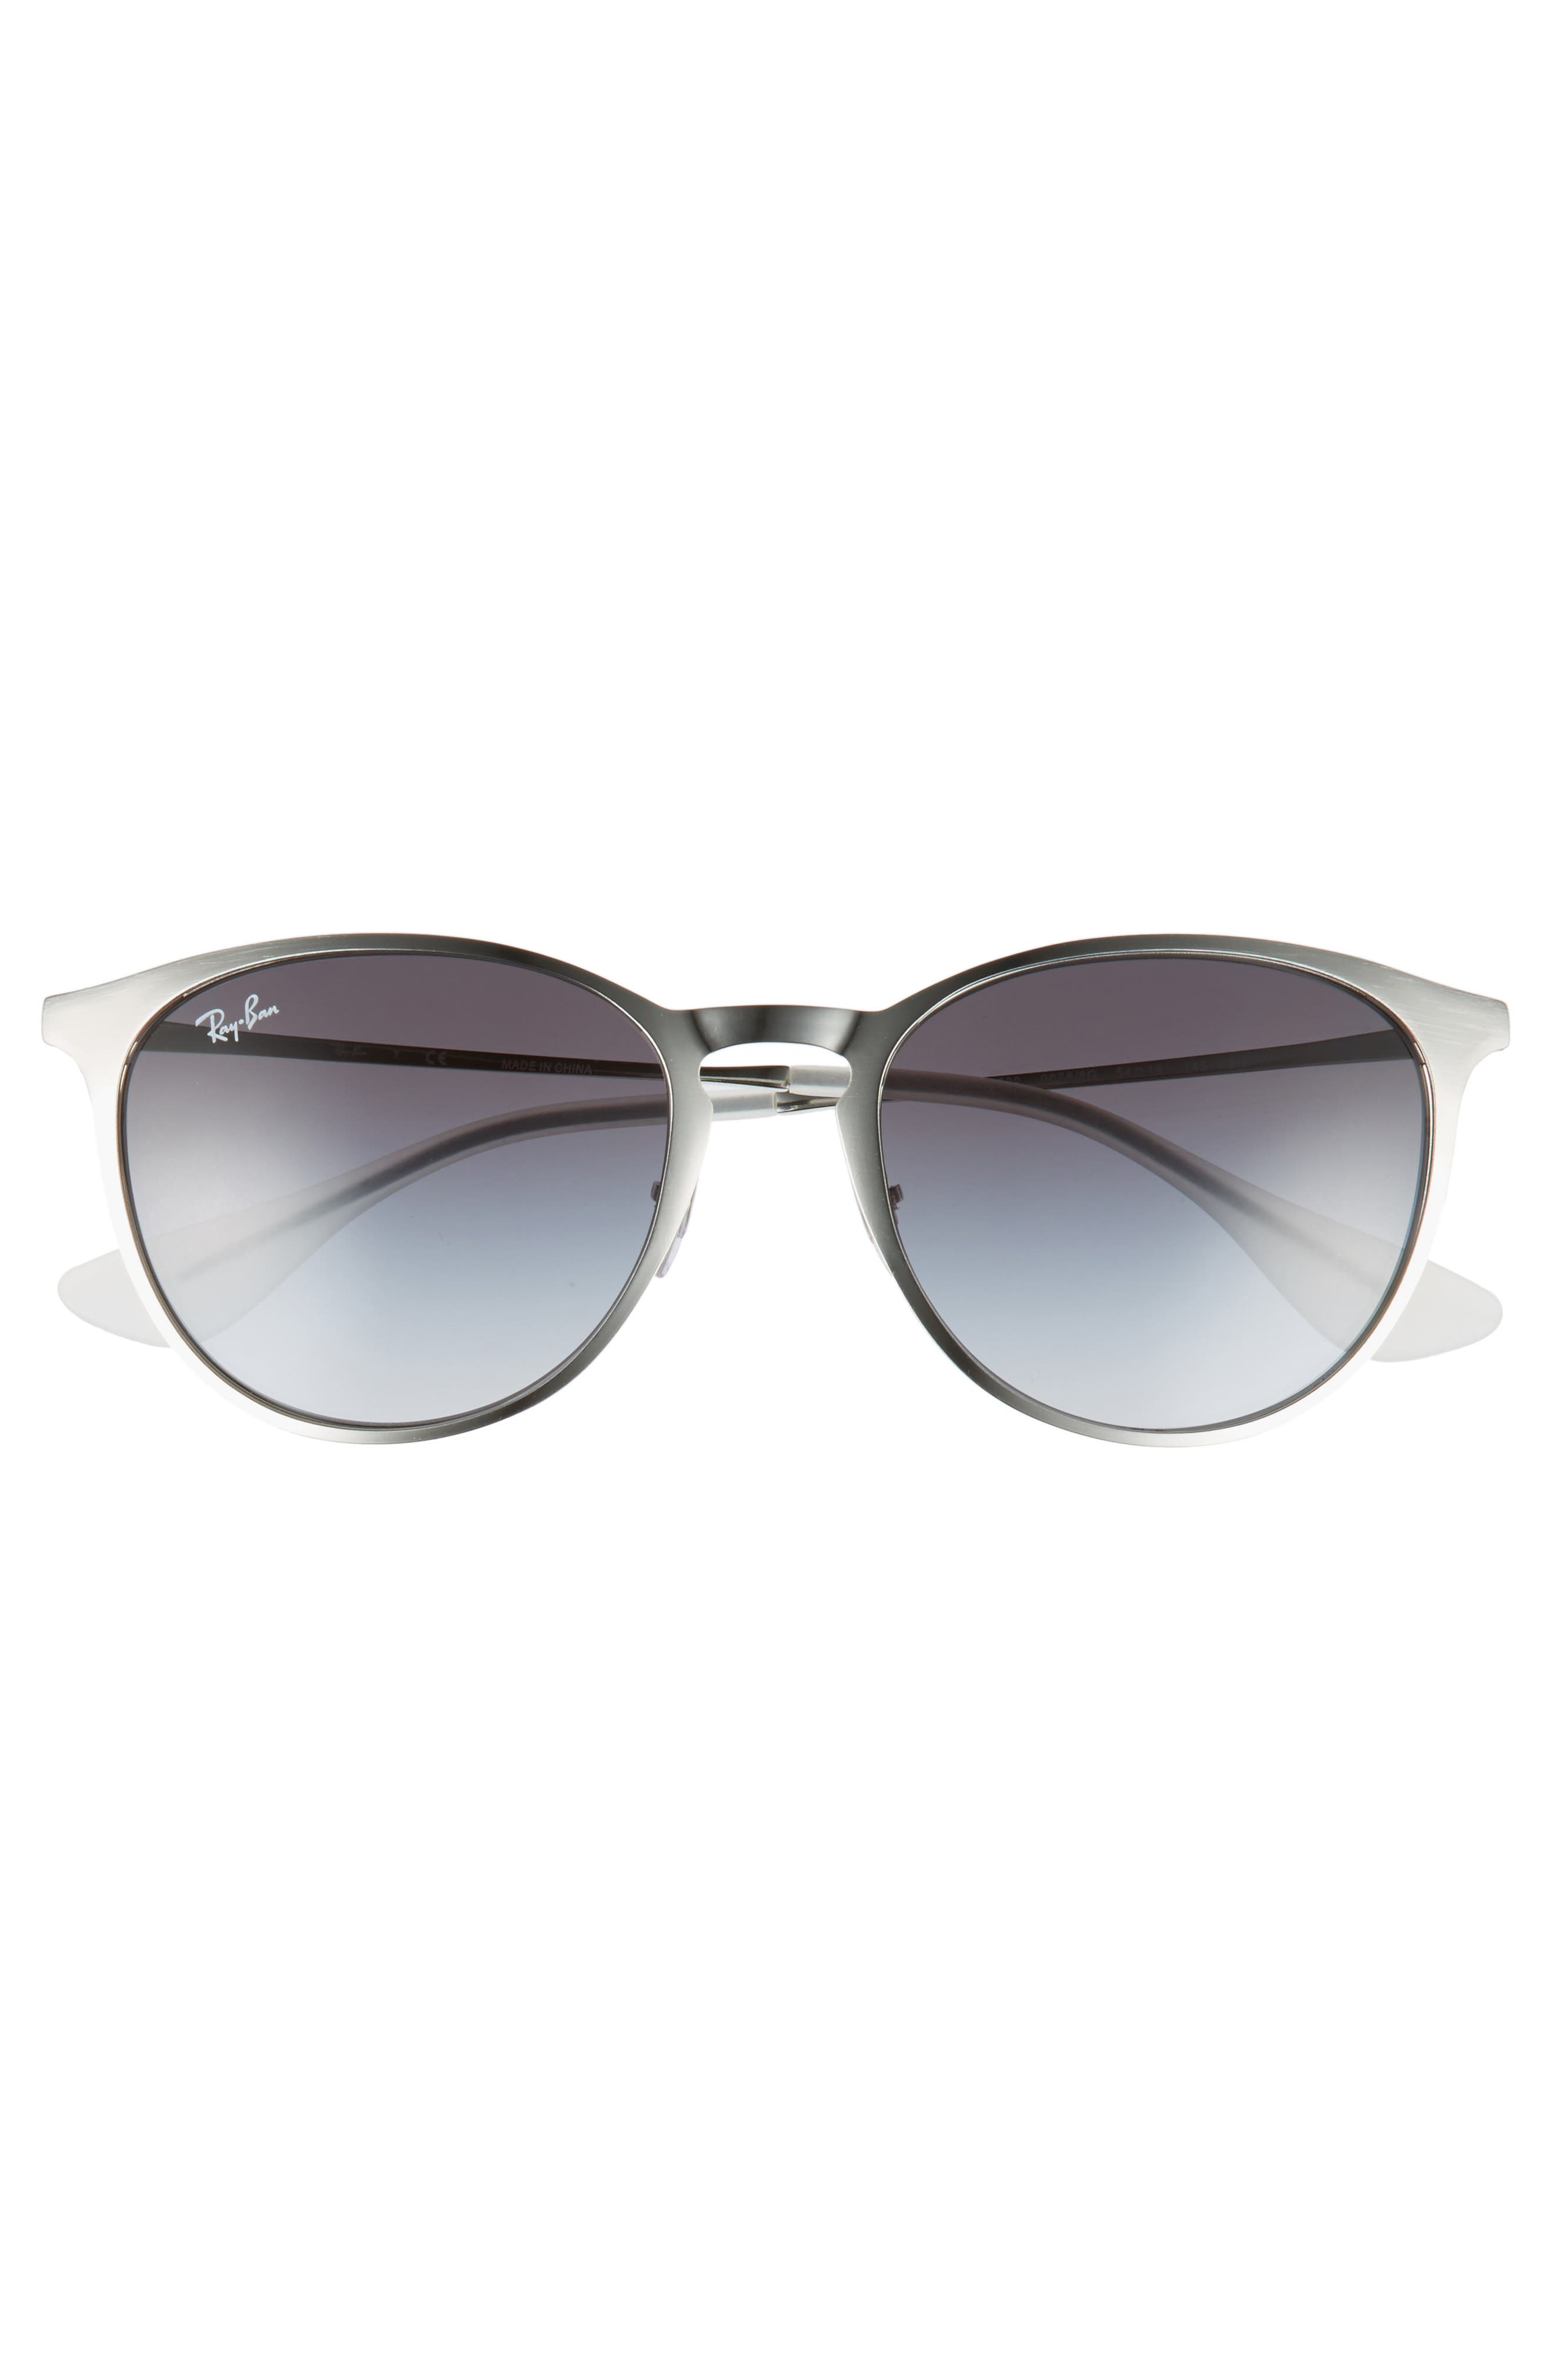 'Youngster' 54mm Sunglasses,                             Alternate thumbnail 3, color,                             040